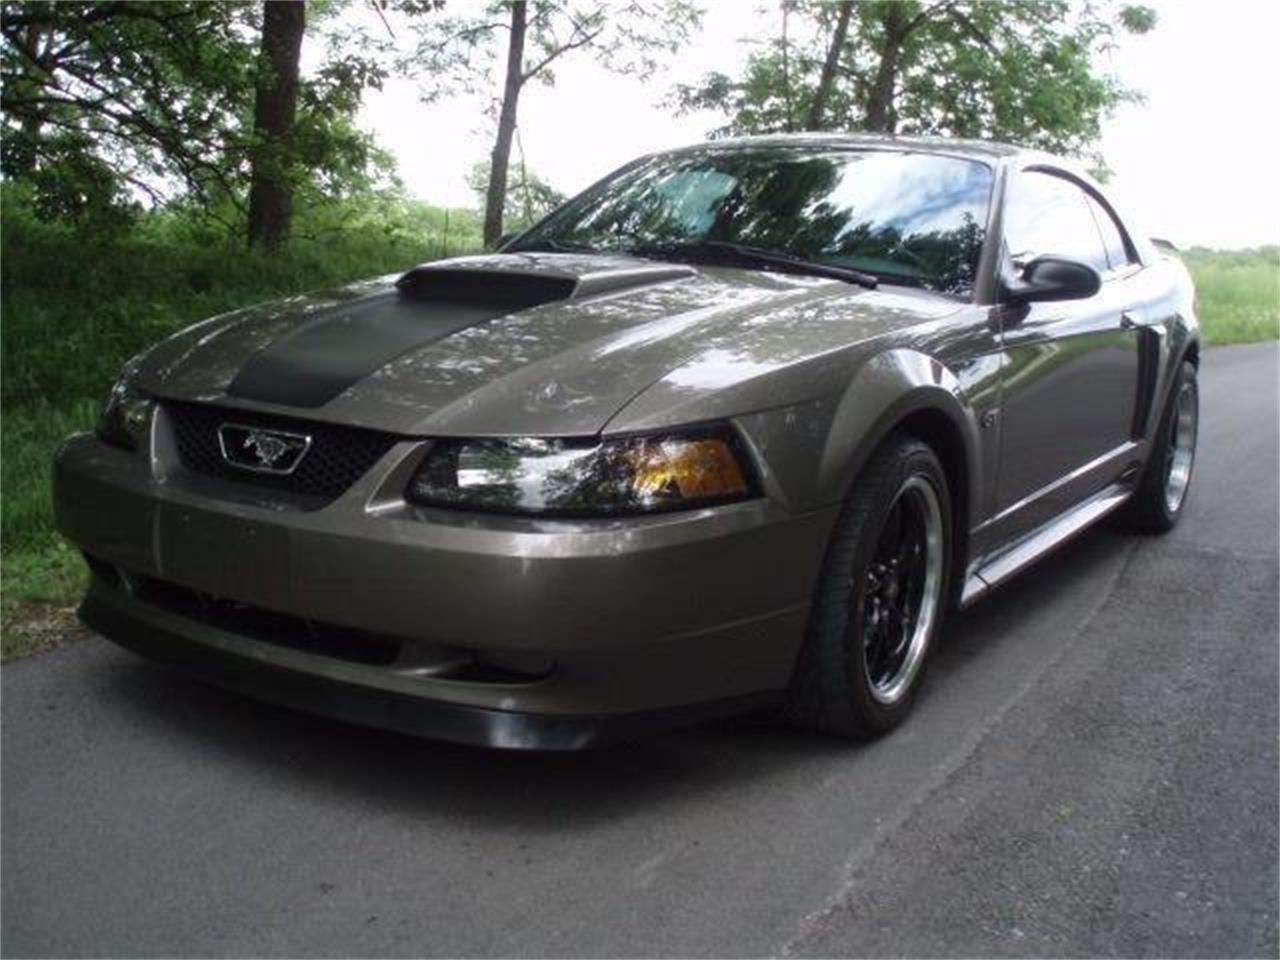 Large picture of 02 mustang mqj3